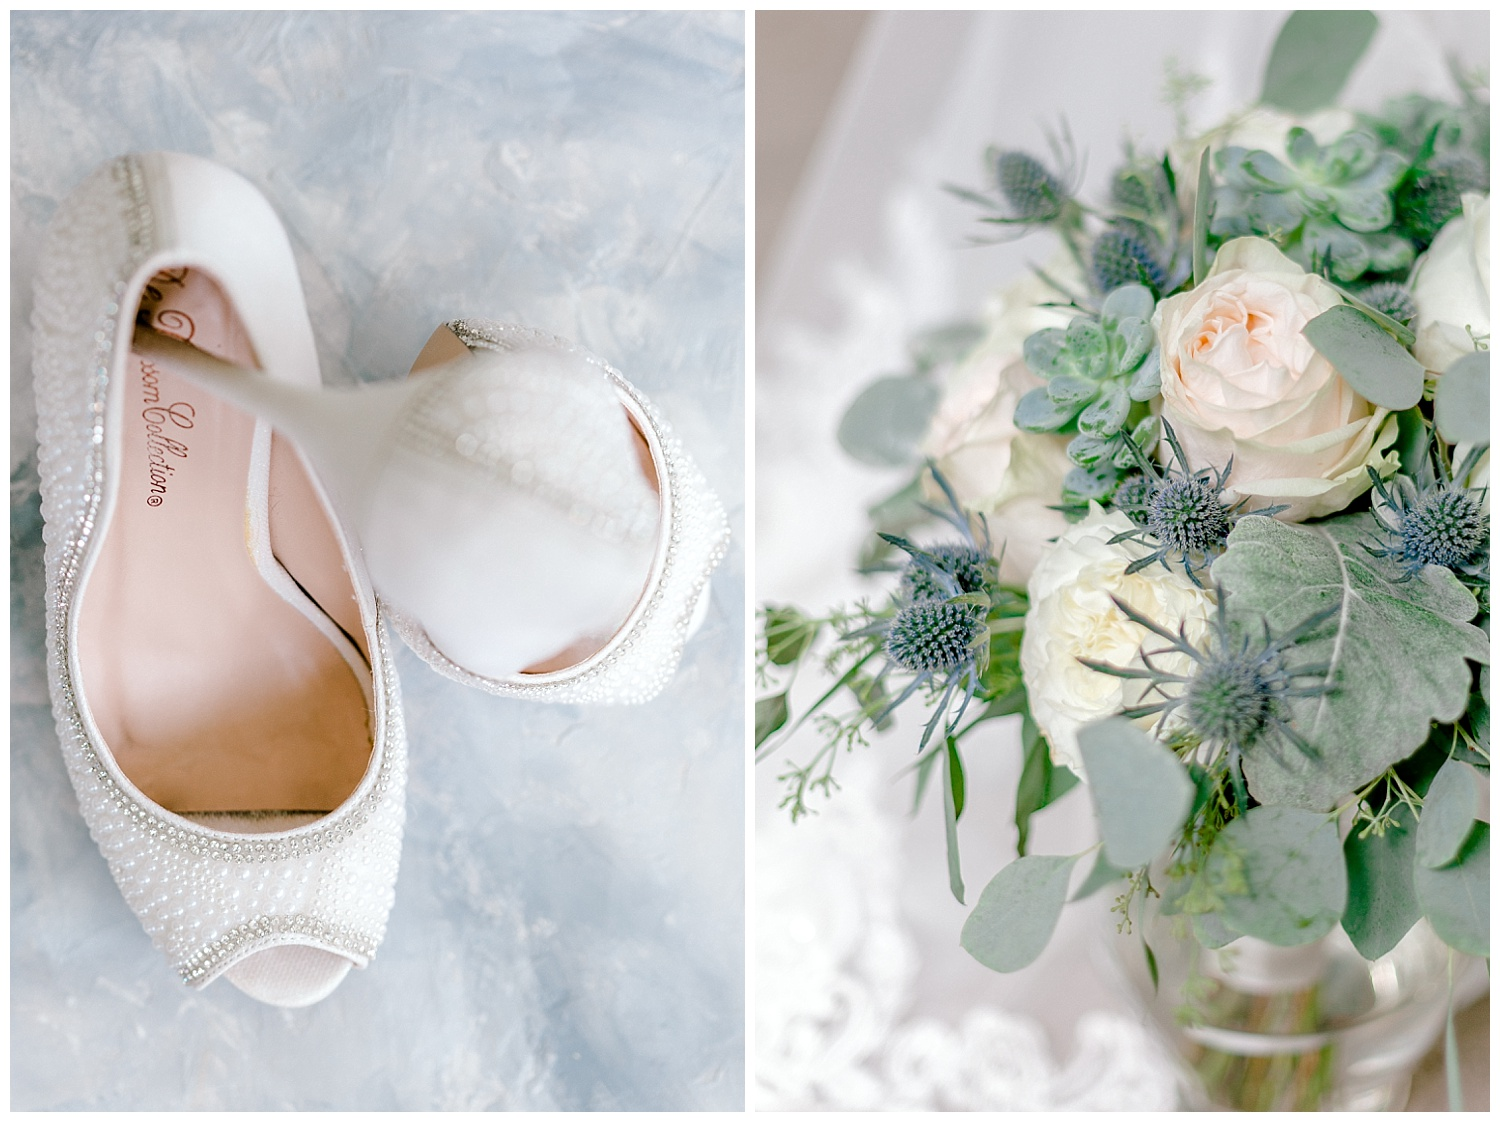 Navy and Blush pink inspired summertime whitewoods wedding in Northeastern Pennsylvania NEPA wapwallopen wedding venue by  PA based wedding and lifestyle photographer Lytle photography_0003.jpg